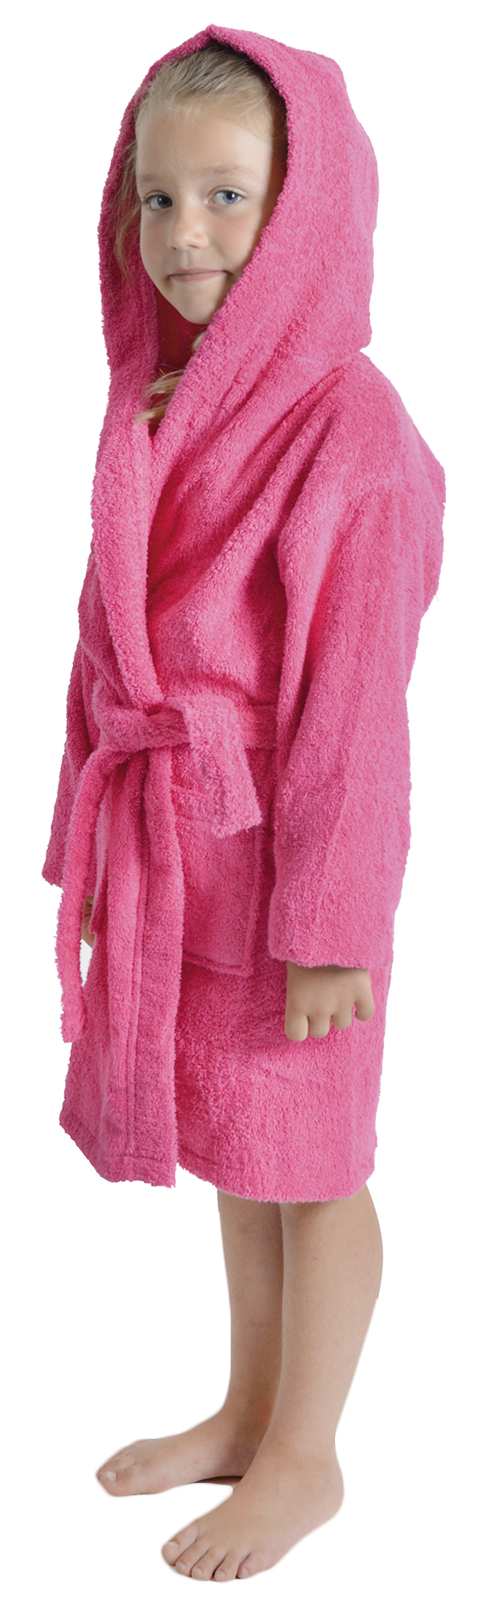 Girls 100% Cotton Towelling Dressing Gown Hooded Bath Robe Xmas Gift ...